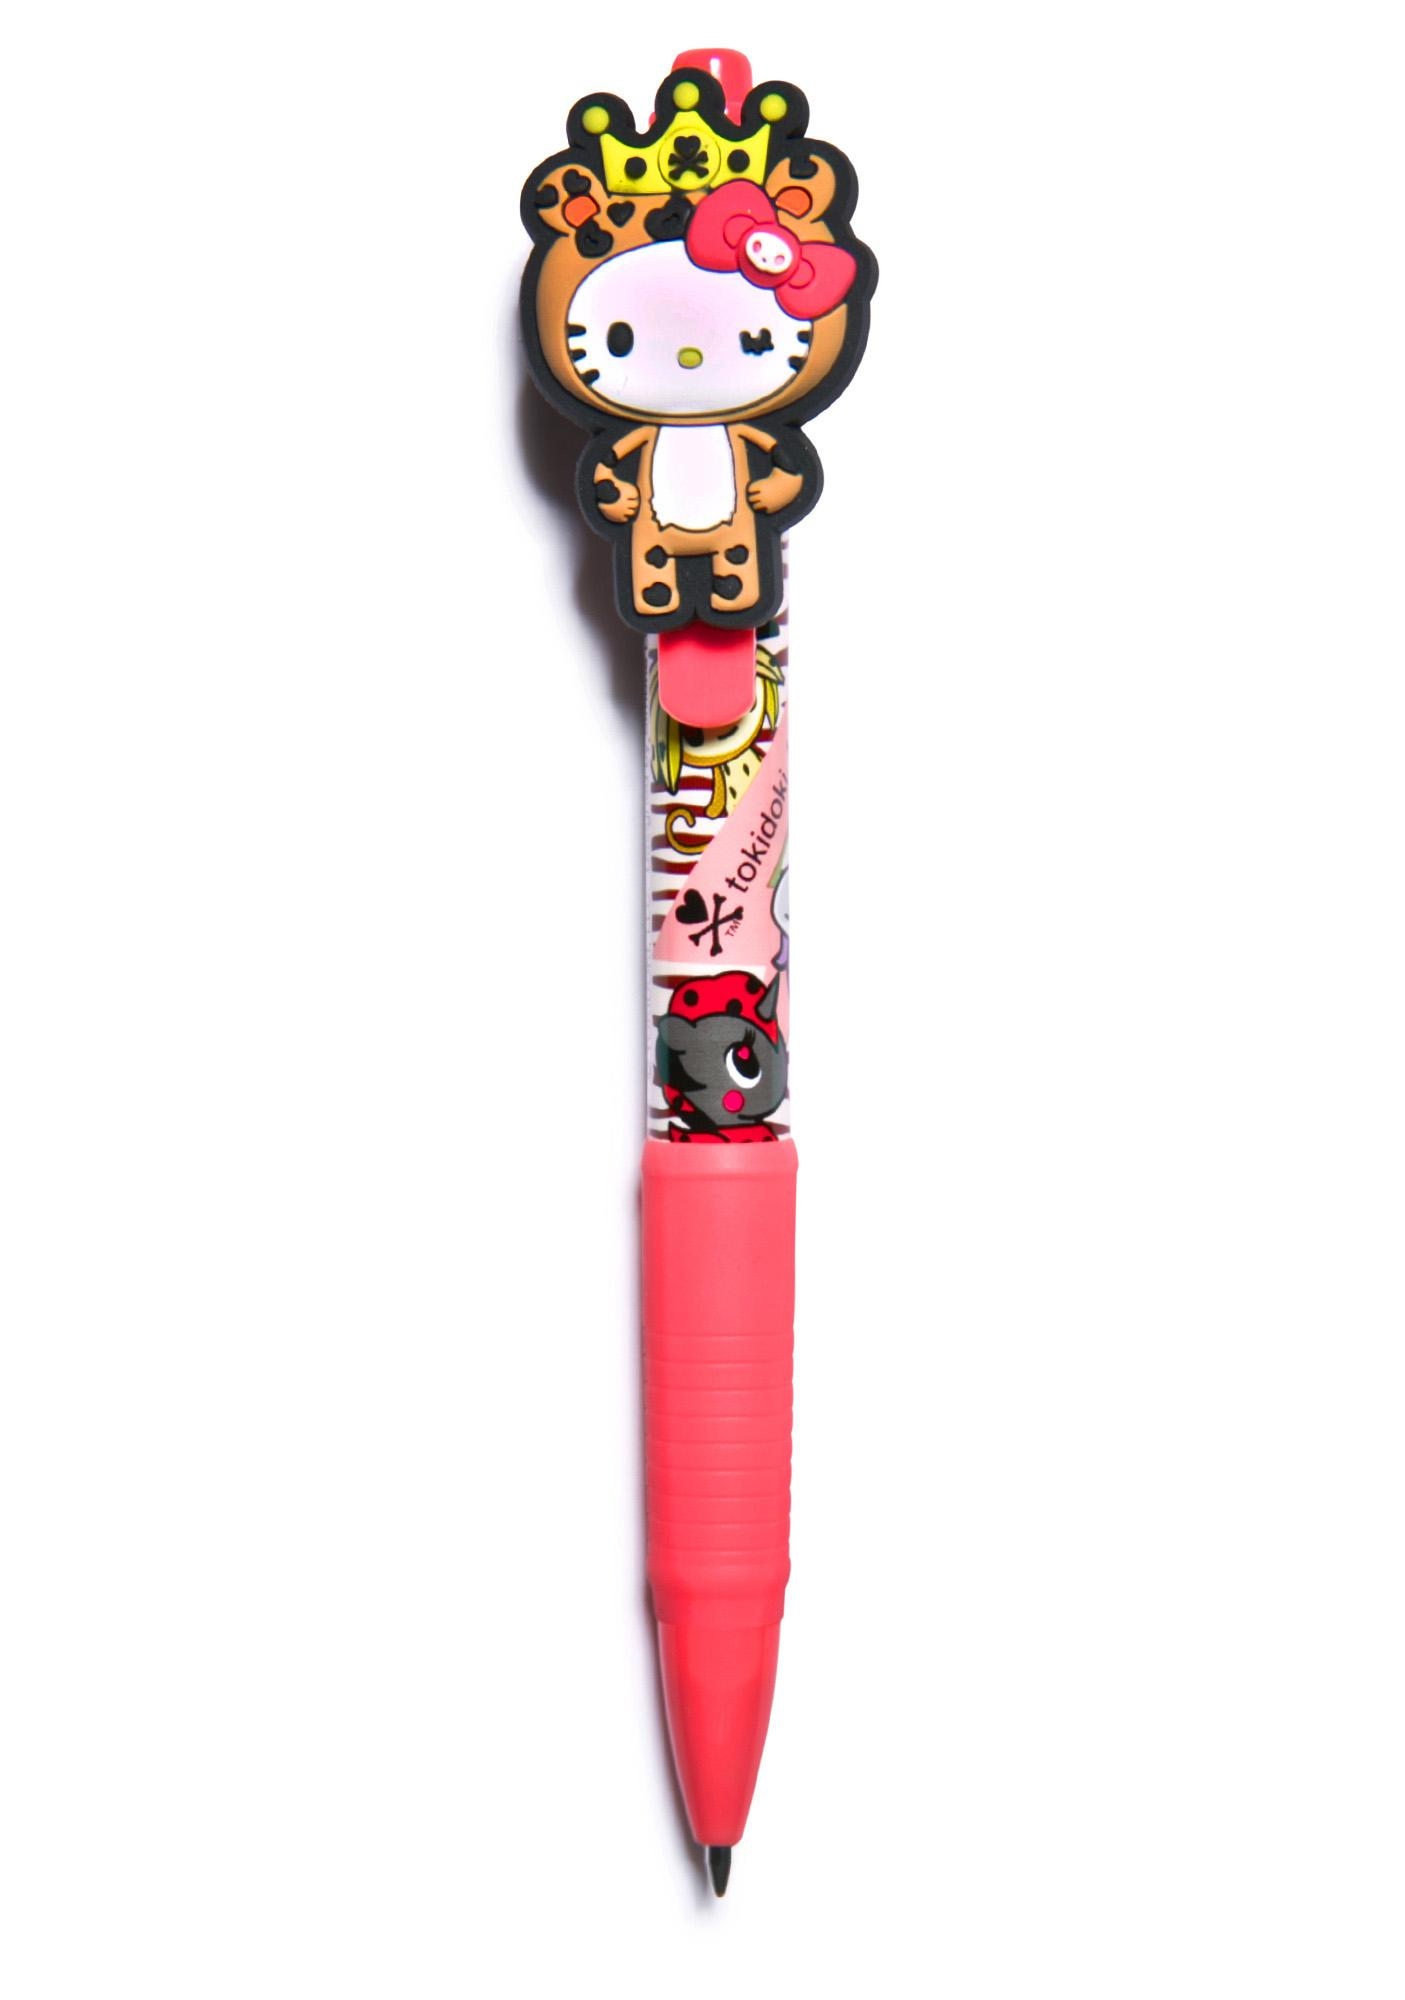 Sanrio Tokidoki X Hello Kitty Summer Safari Ballpoint Pen